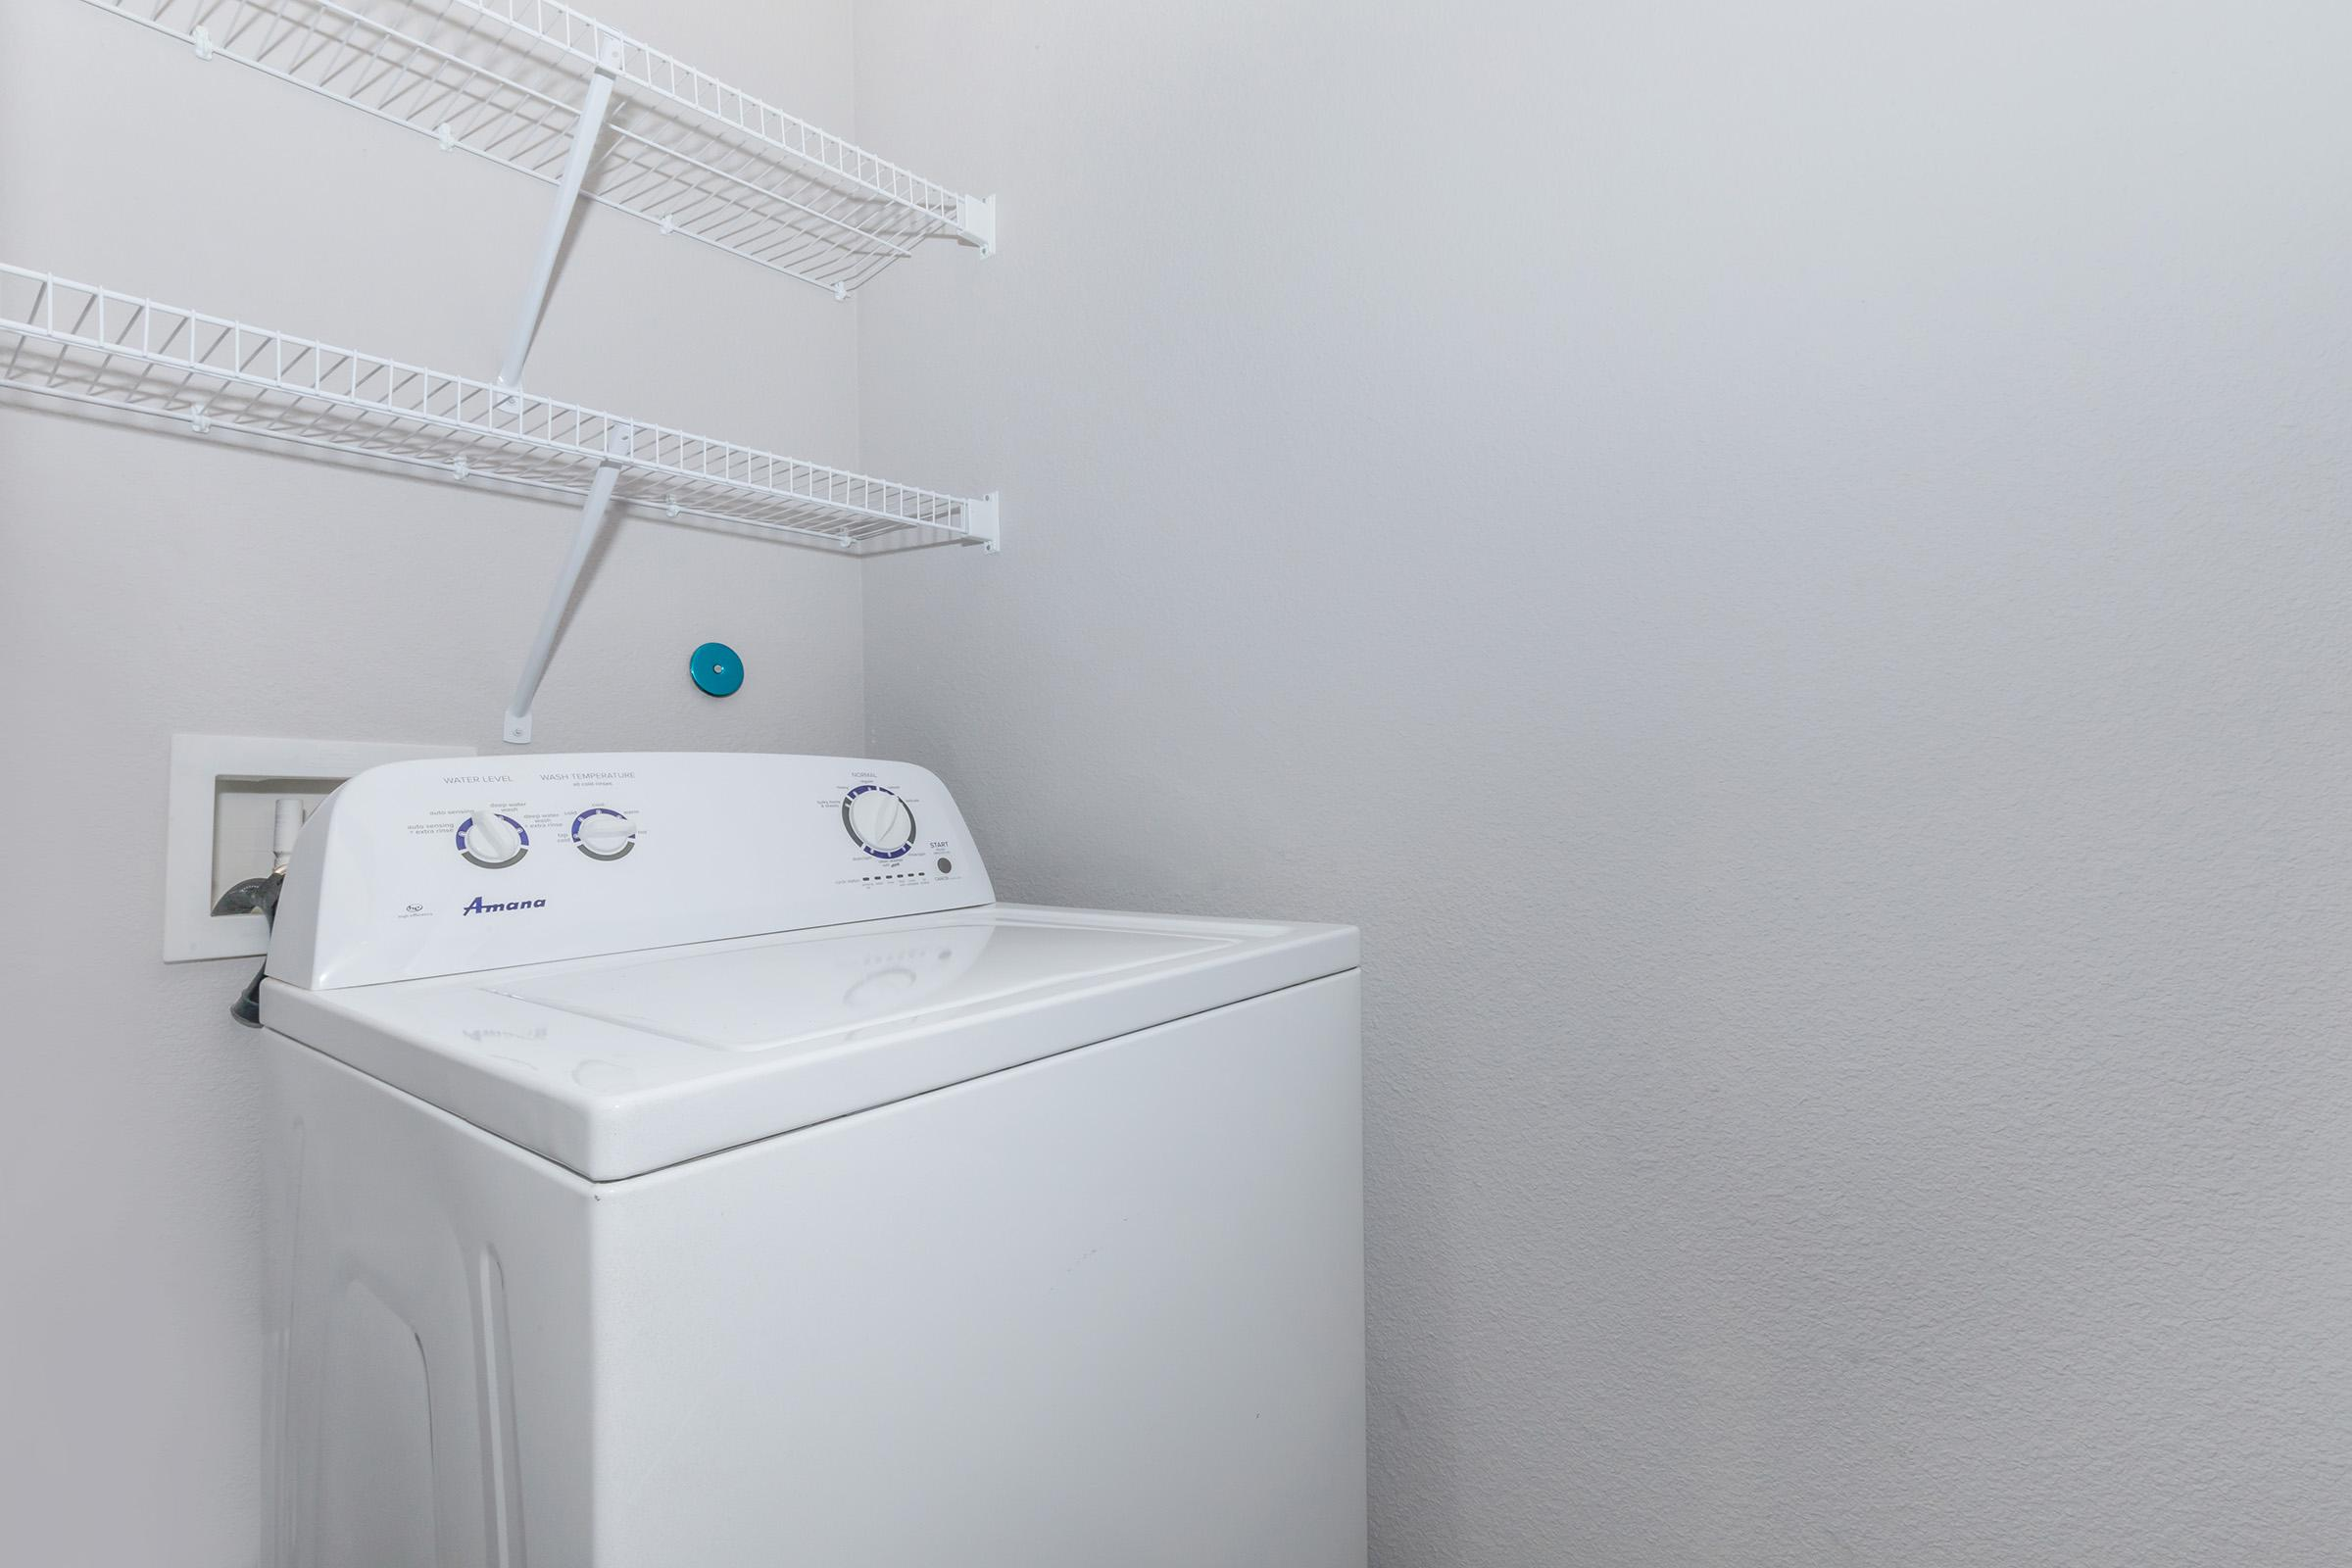 IN-HOME WASHER AND DRYER AT REATA WEST APARTMENTS